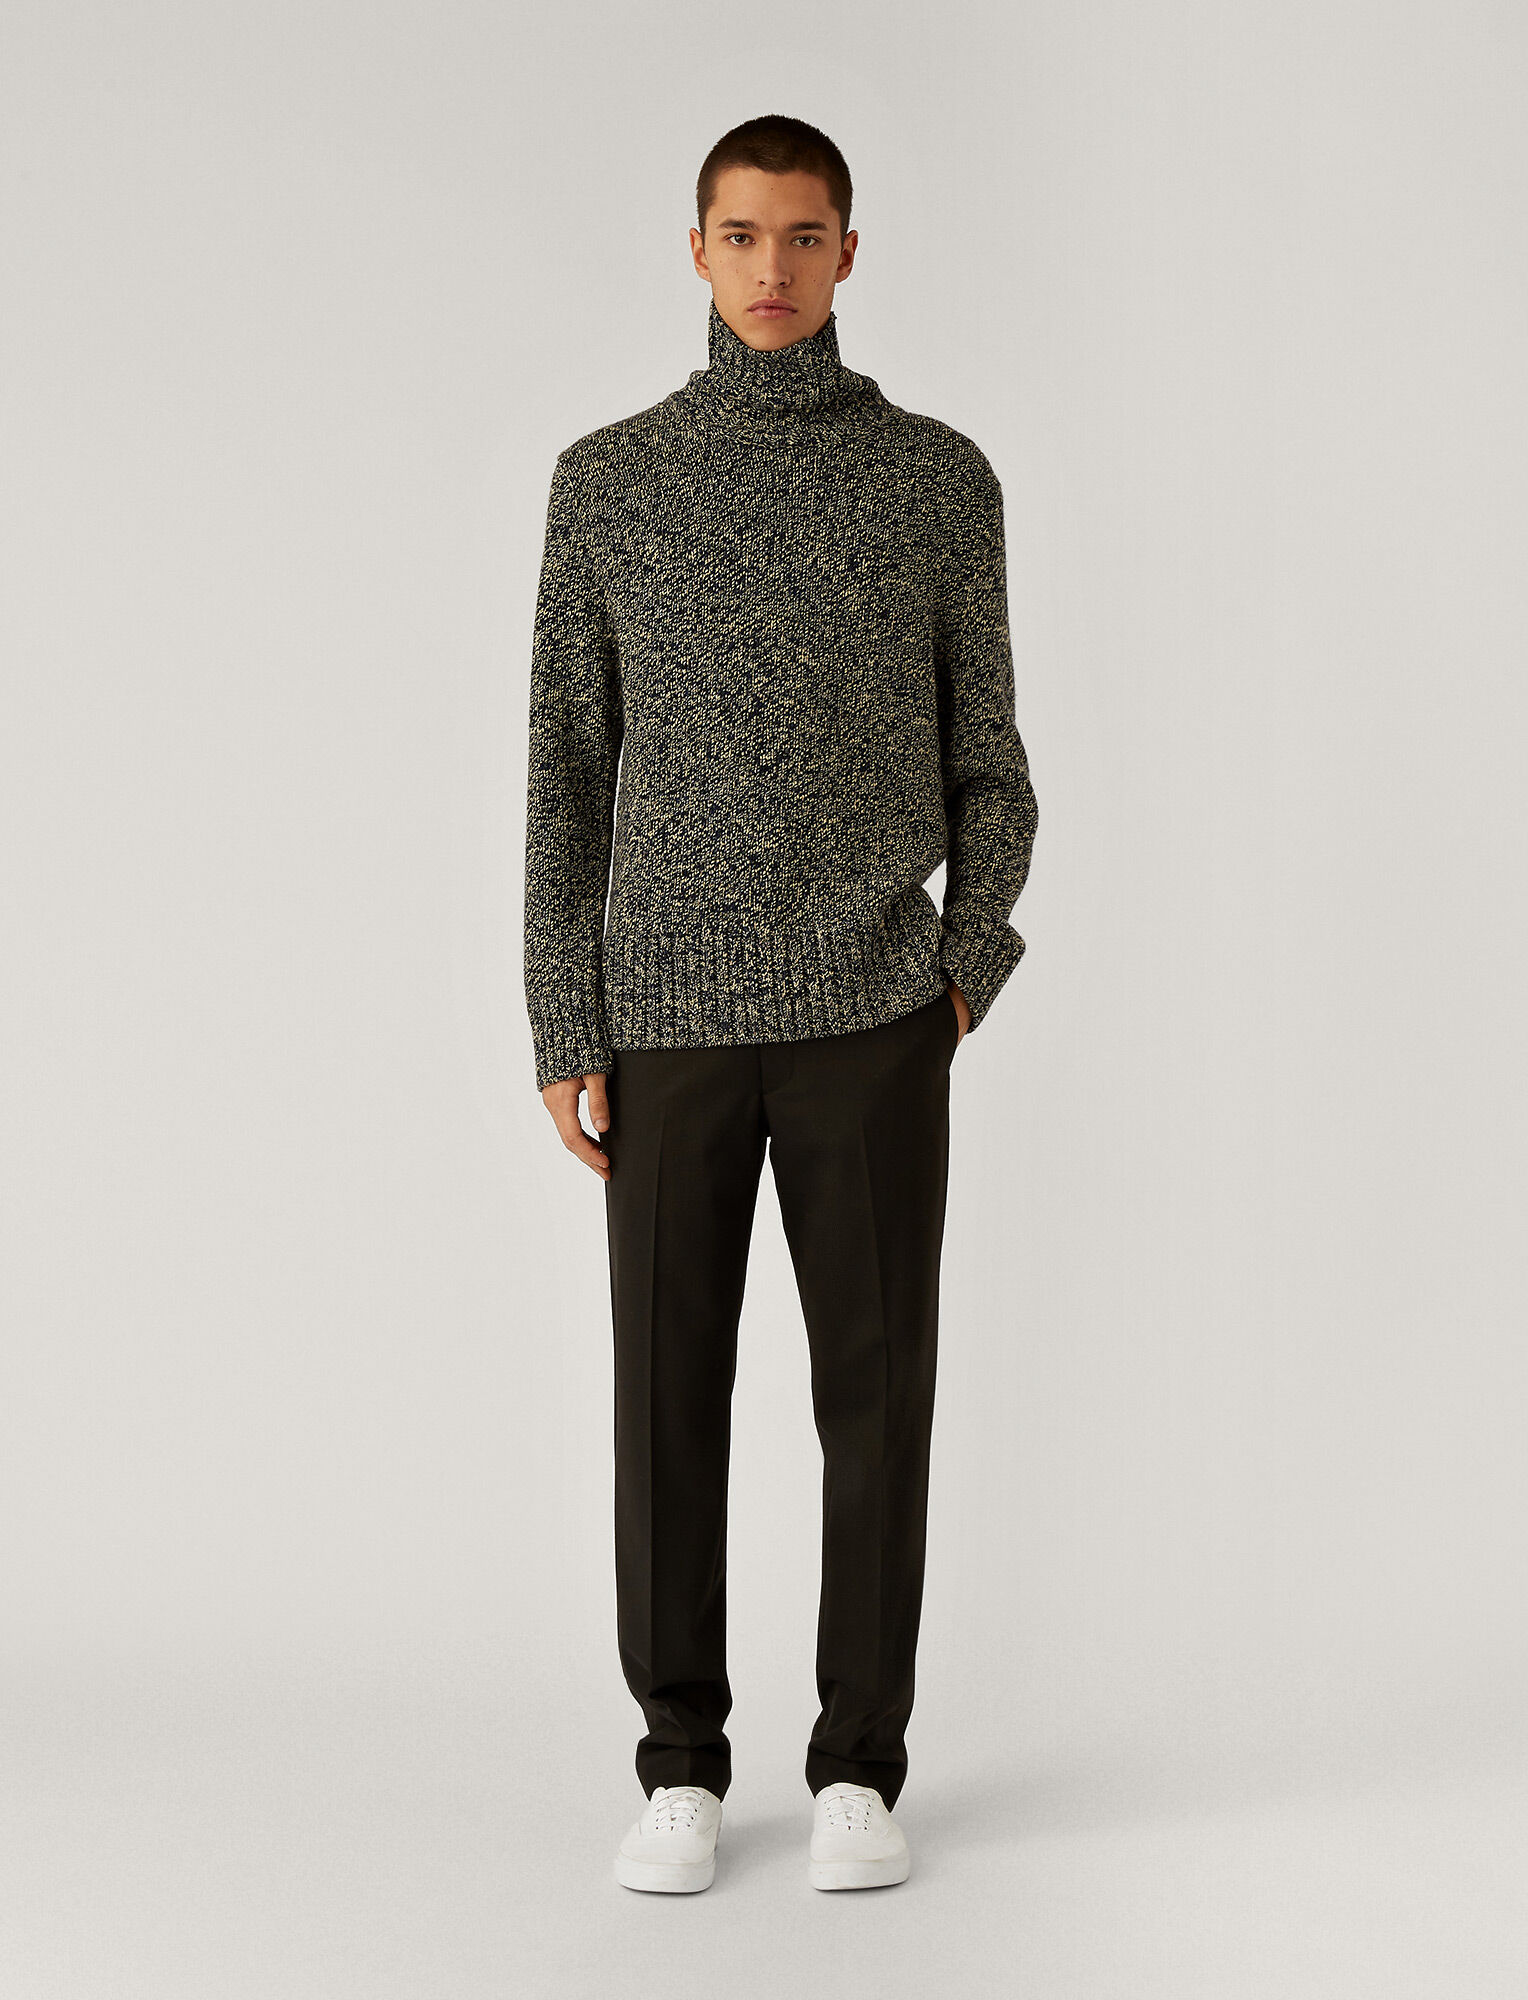 Joseph, High Neck Chunky Tweed Knit, in Blue